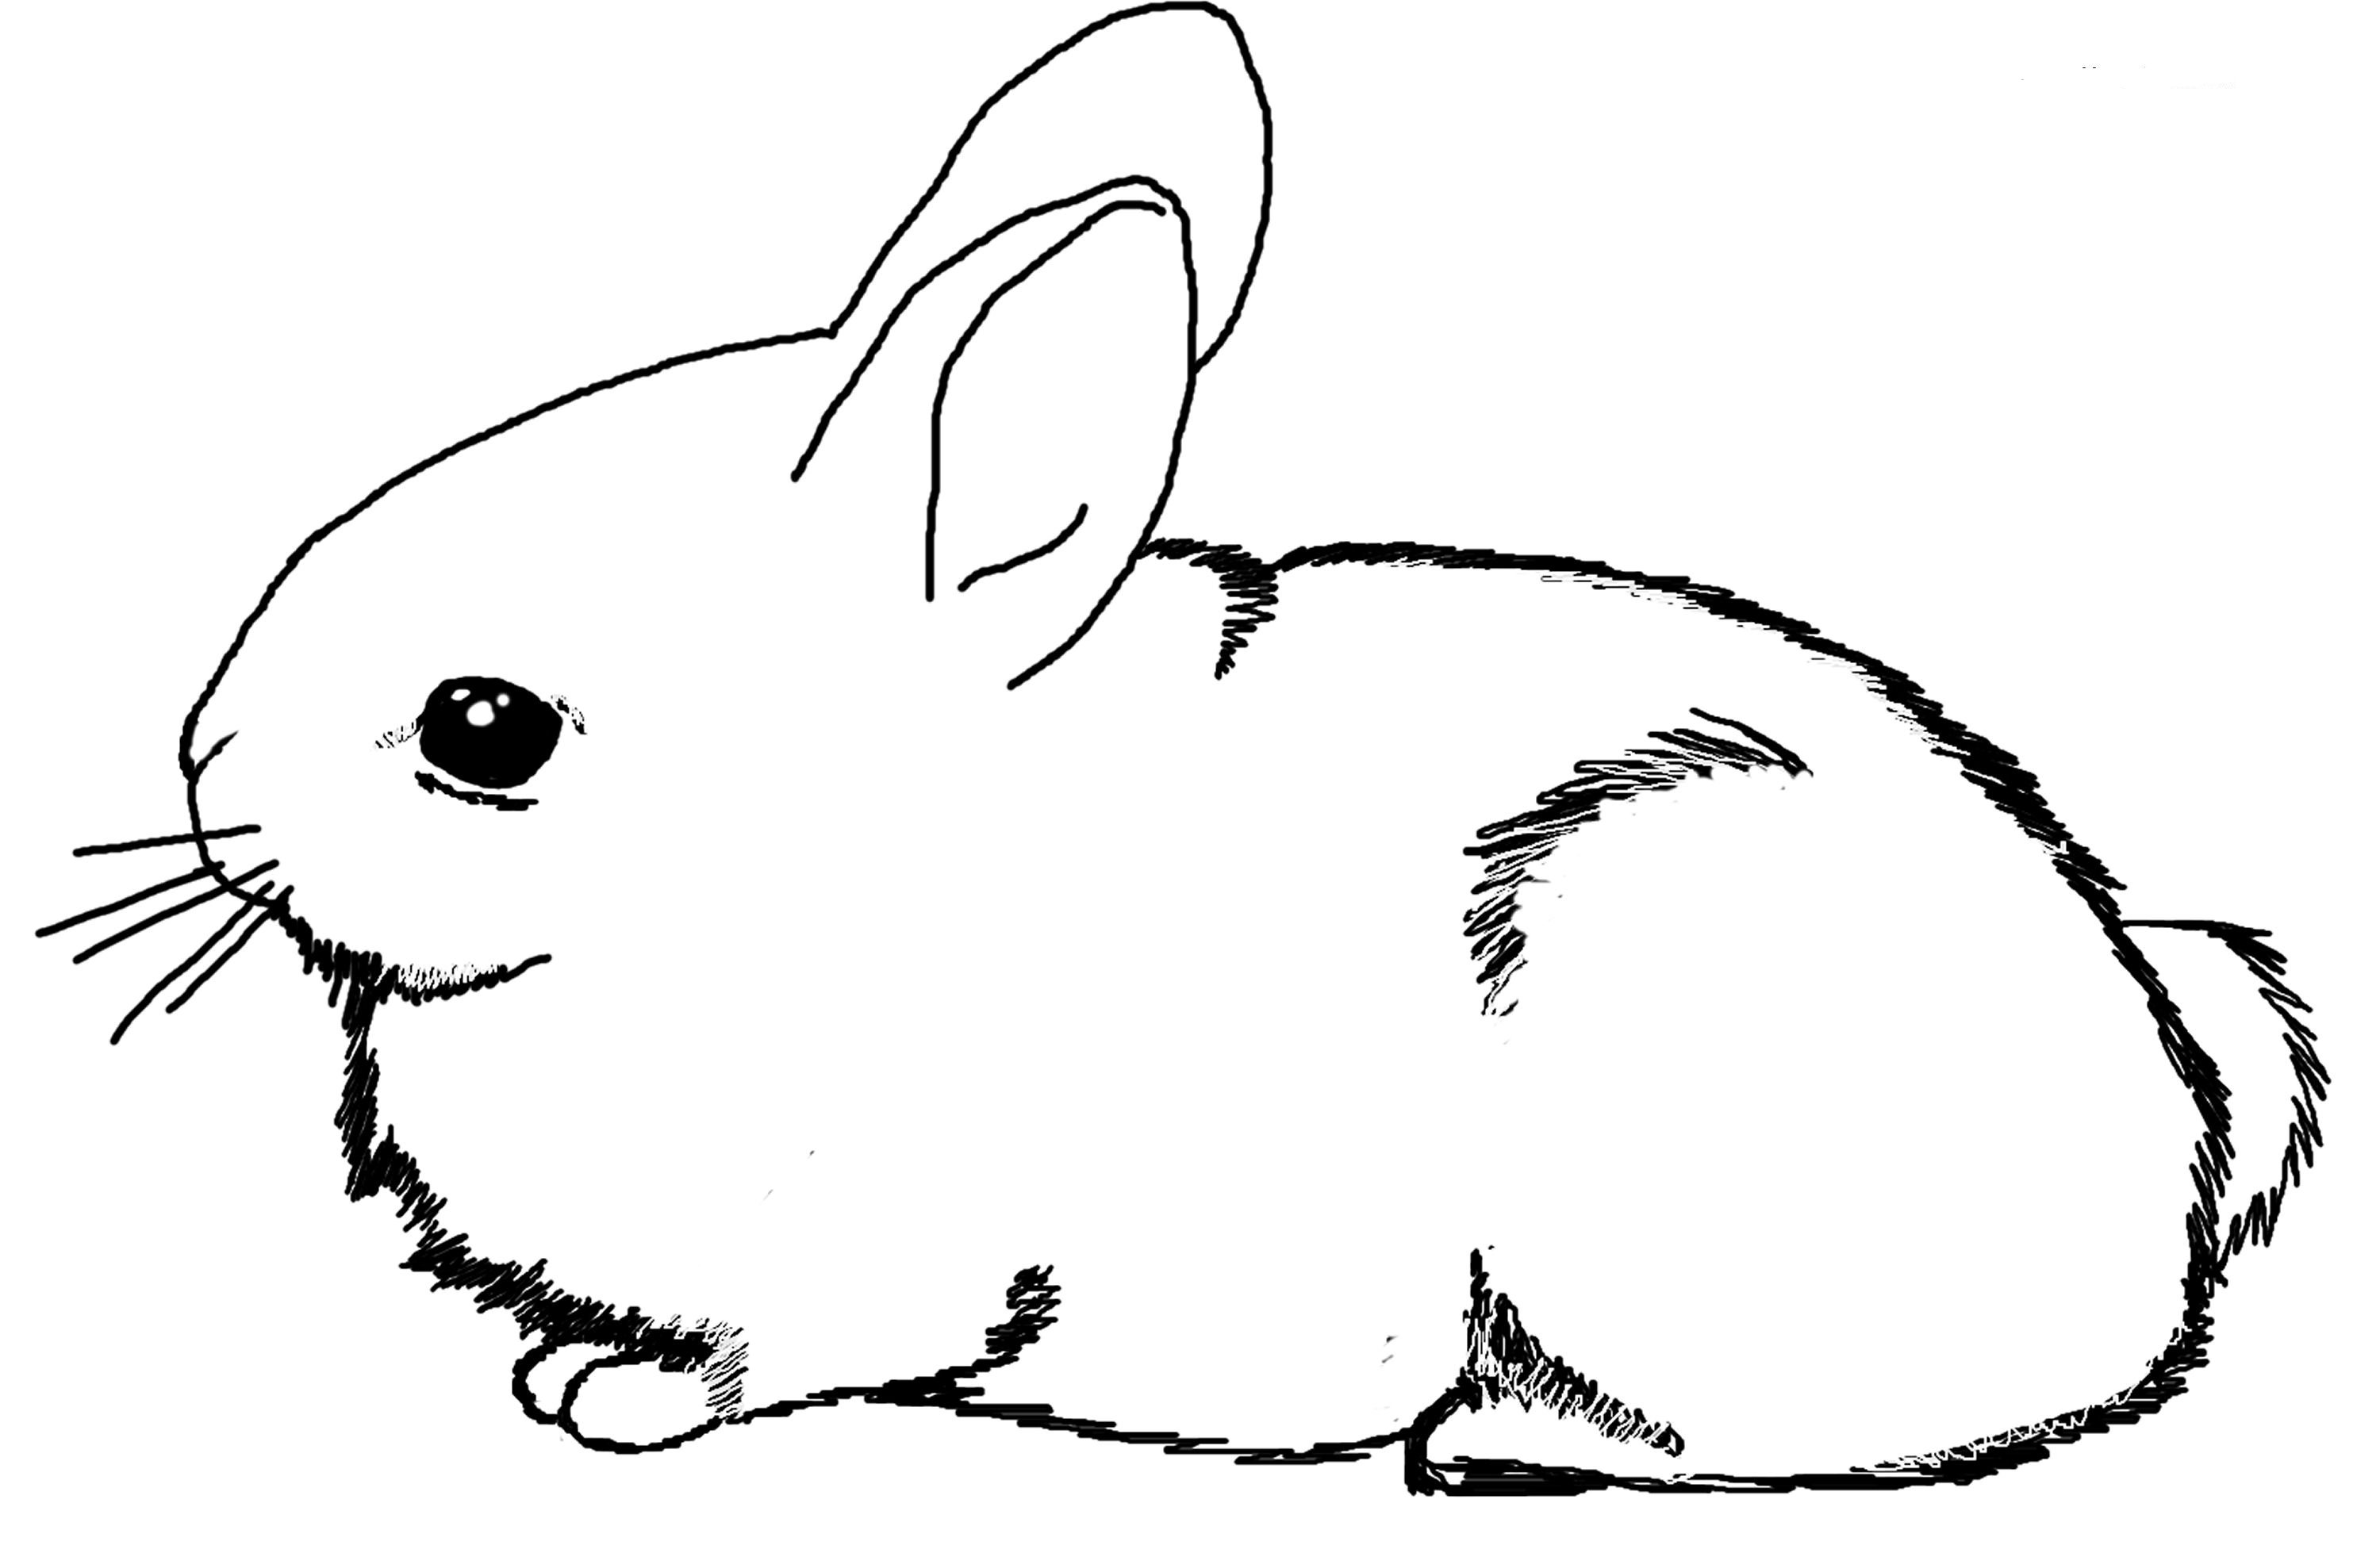 coloring pages of a bunny bunny coloring pages best coloring pages for kids of bunny pages coloring a